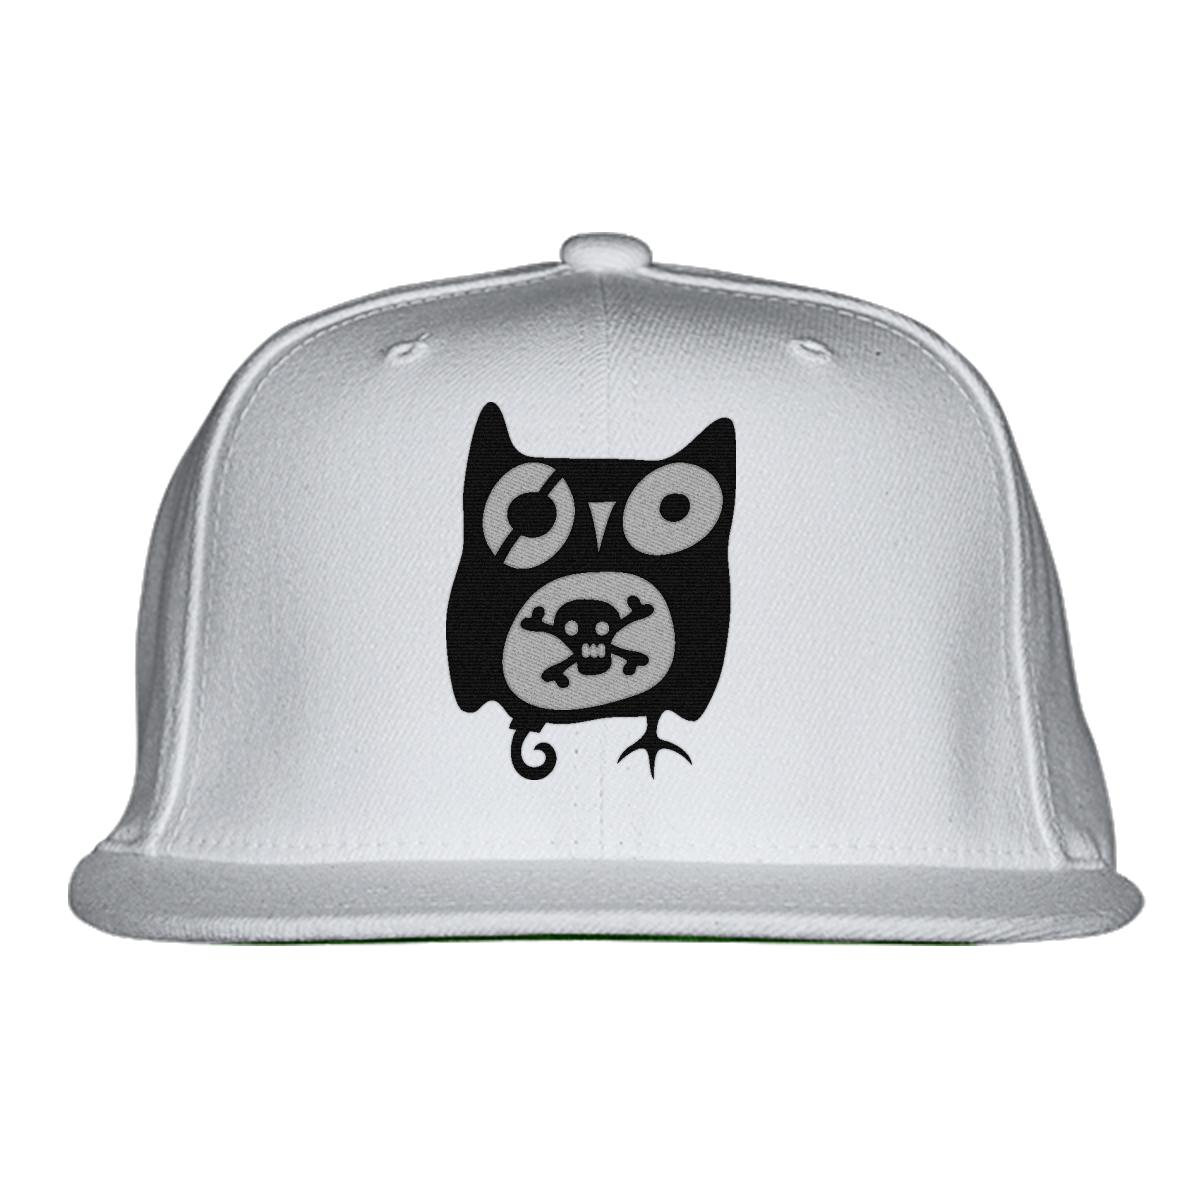 dd5dc32267a Owl with skull snapback hat embroidered jpg 1200x1200 White owl snapback